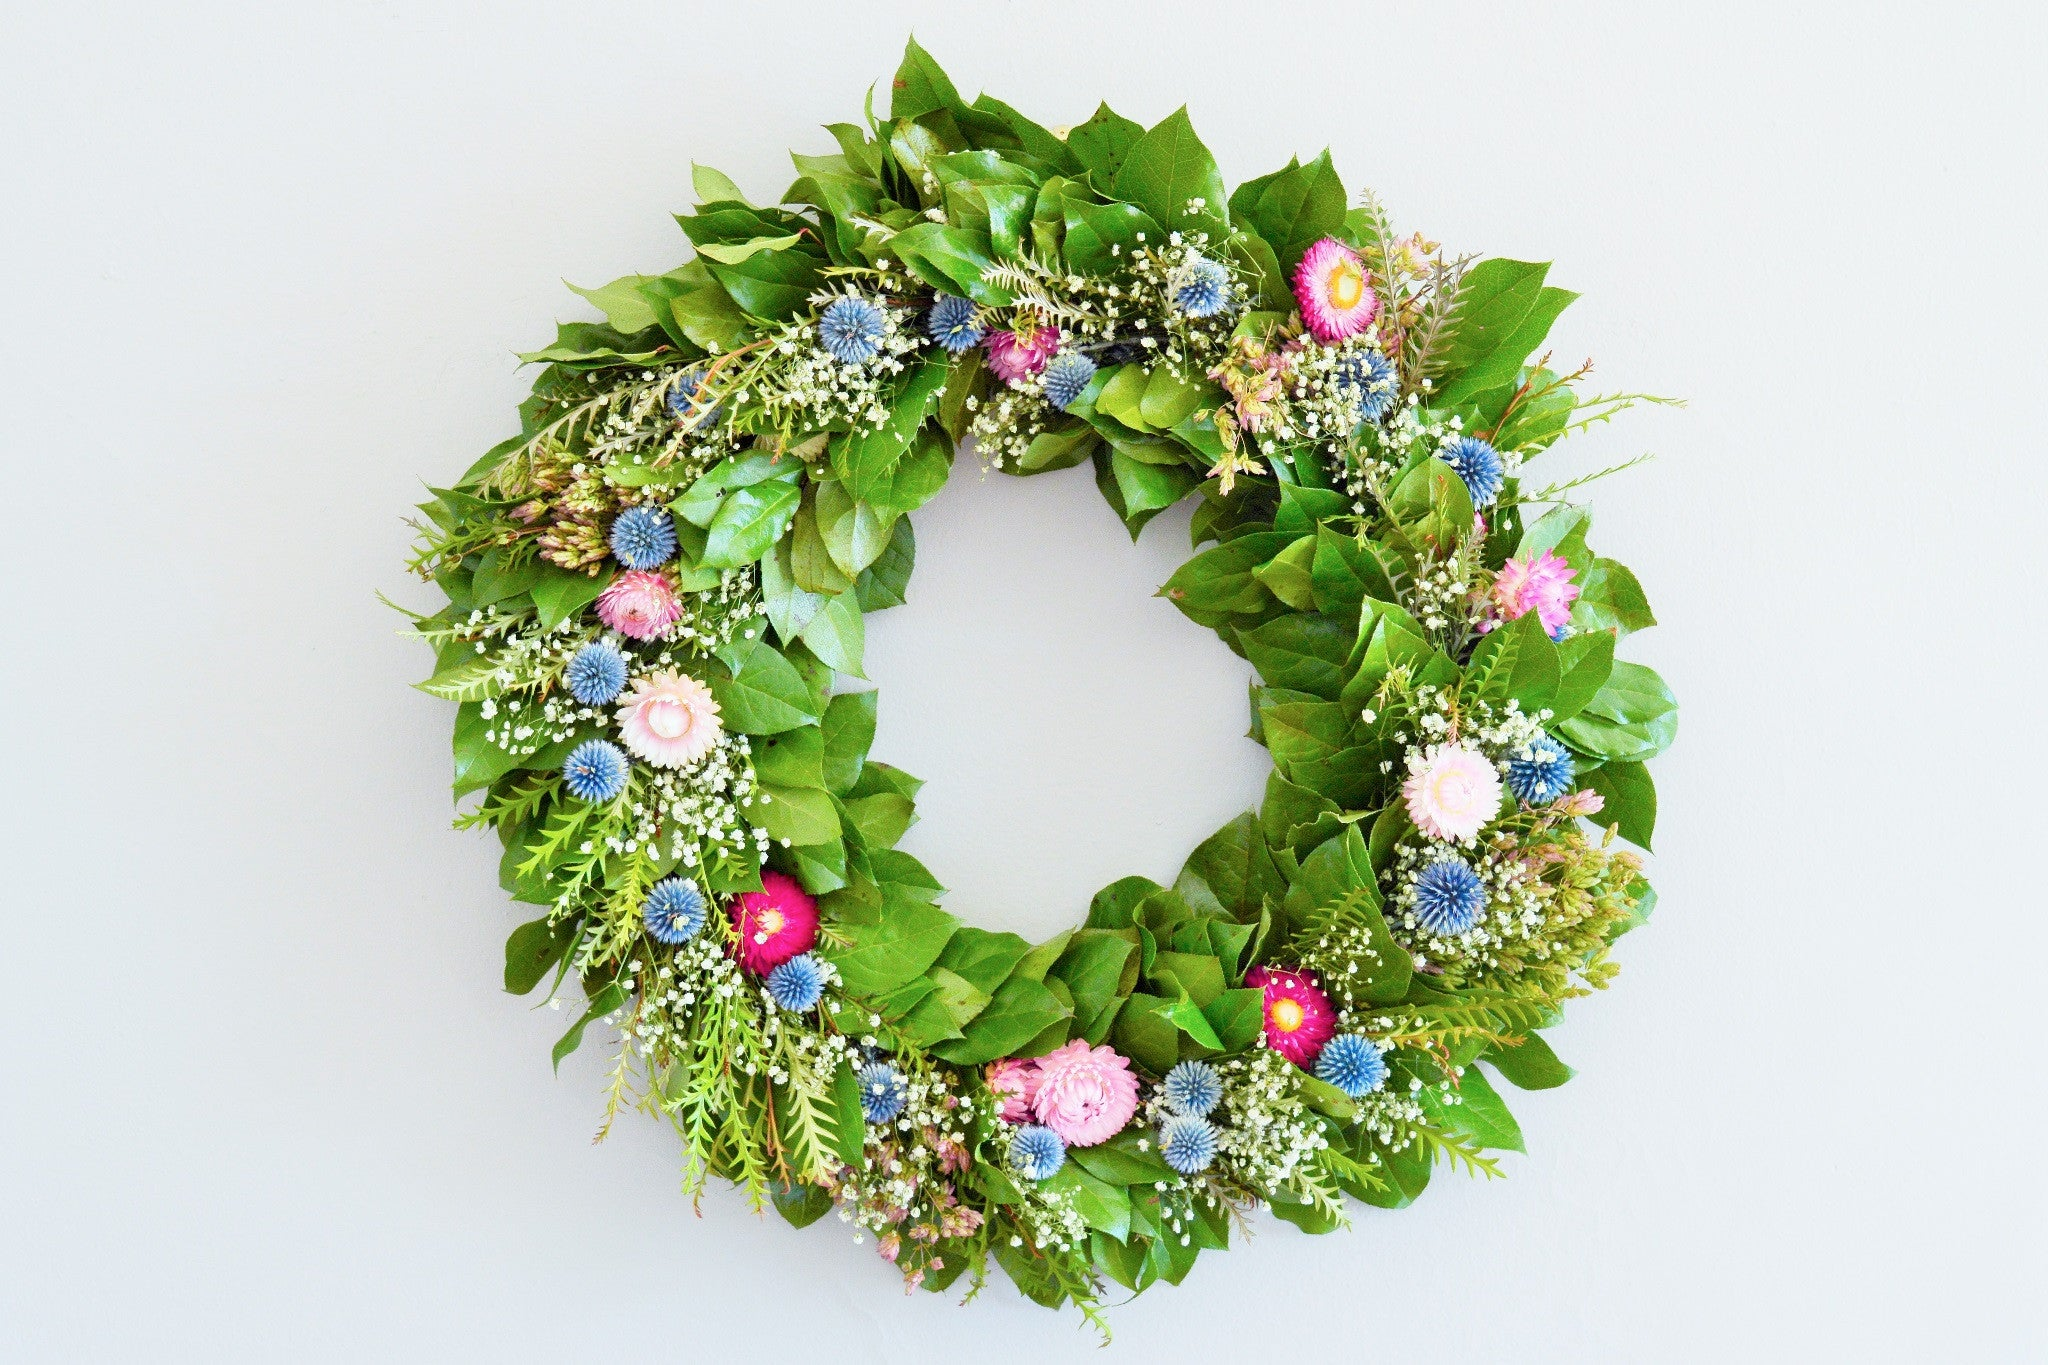 Celebrate Summer with a Summer Door Wreath from Club Botanic